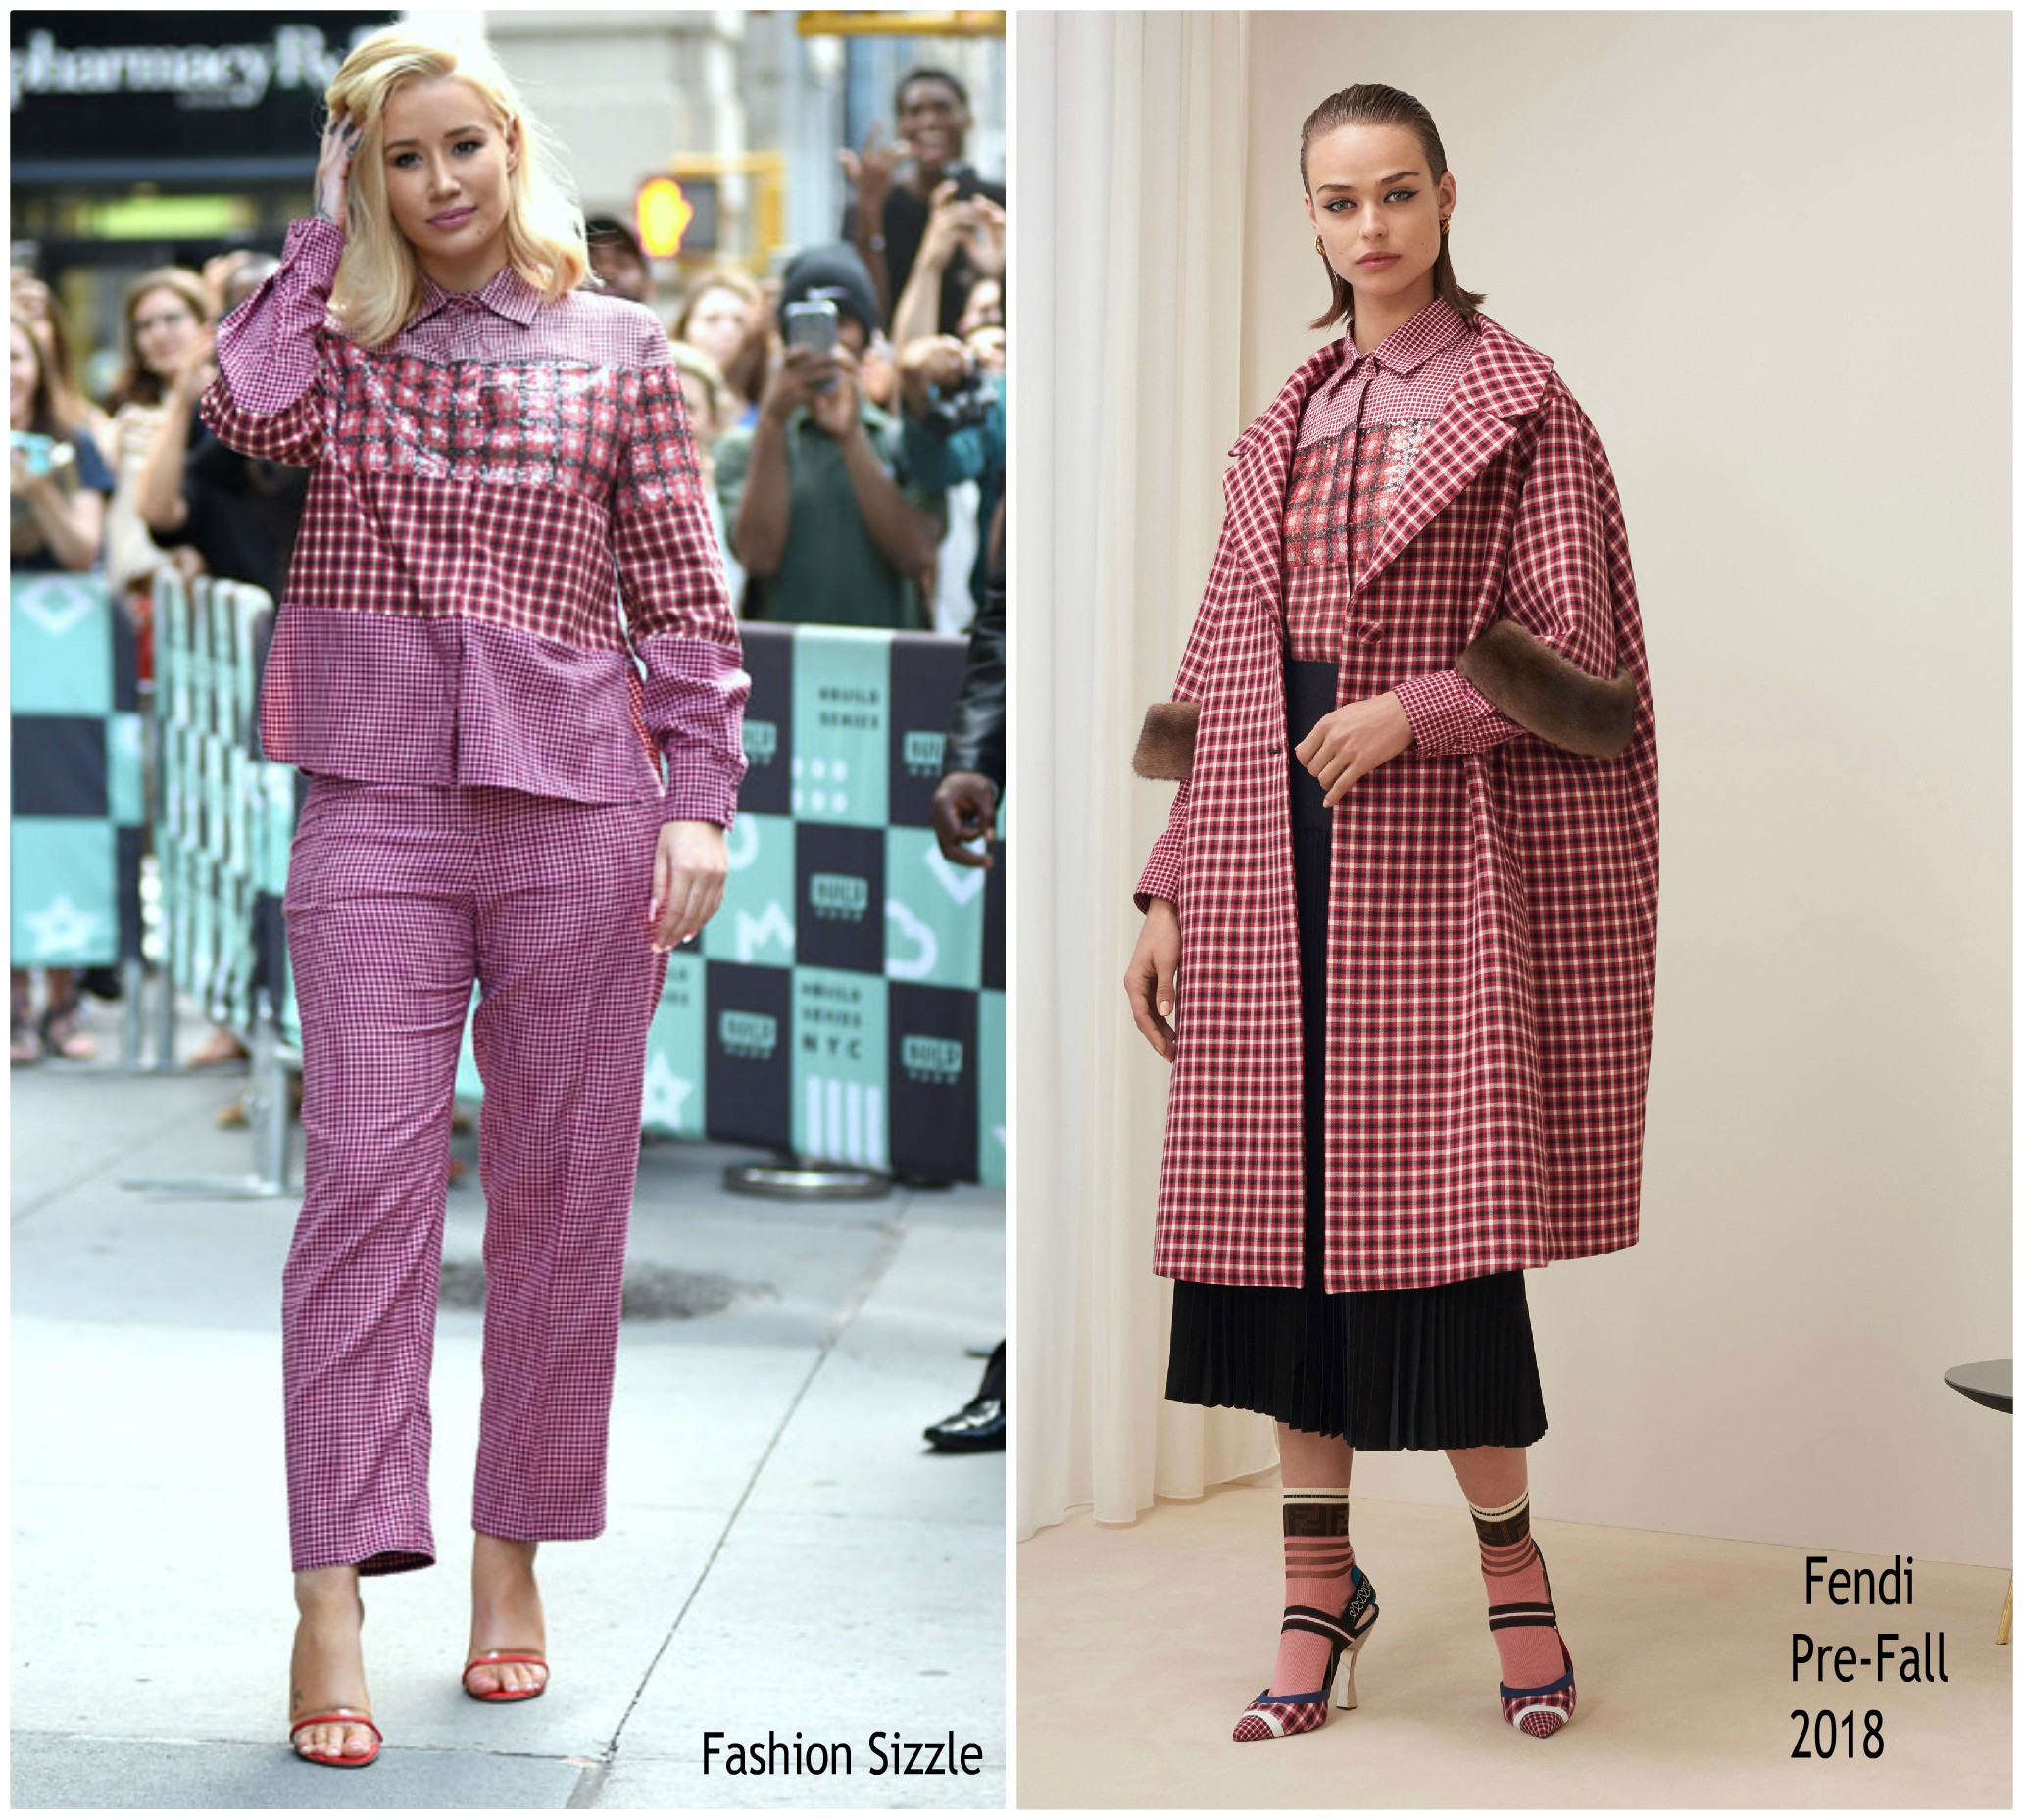 iggy-azalea-in-fendi-build-series